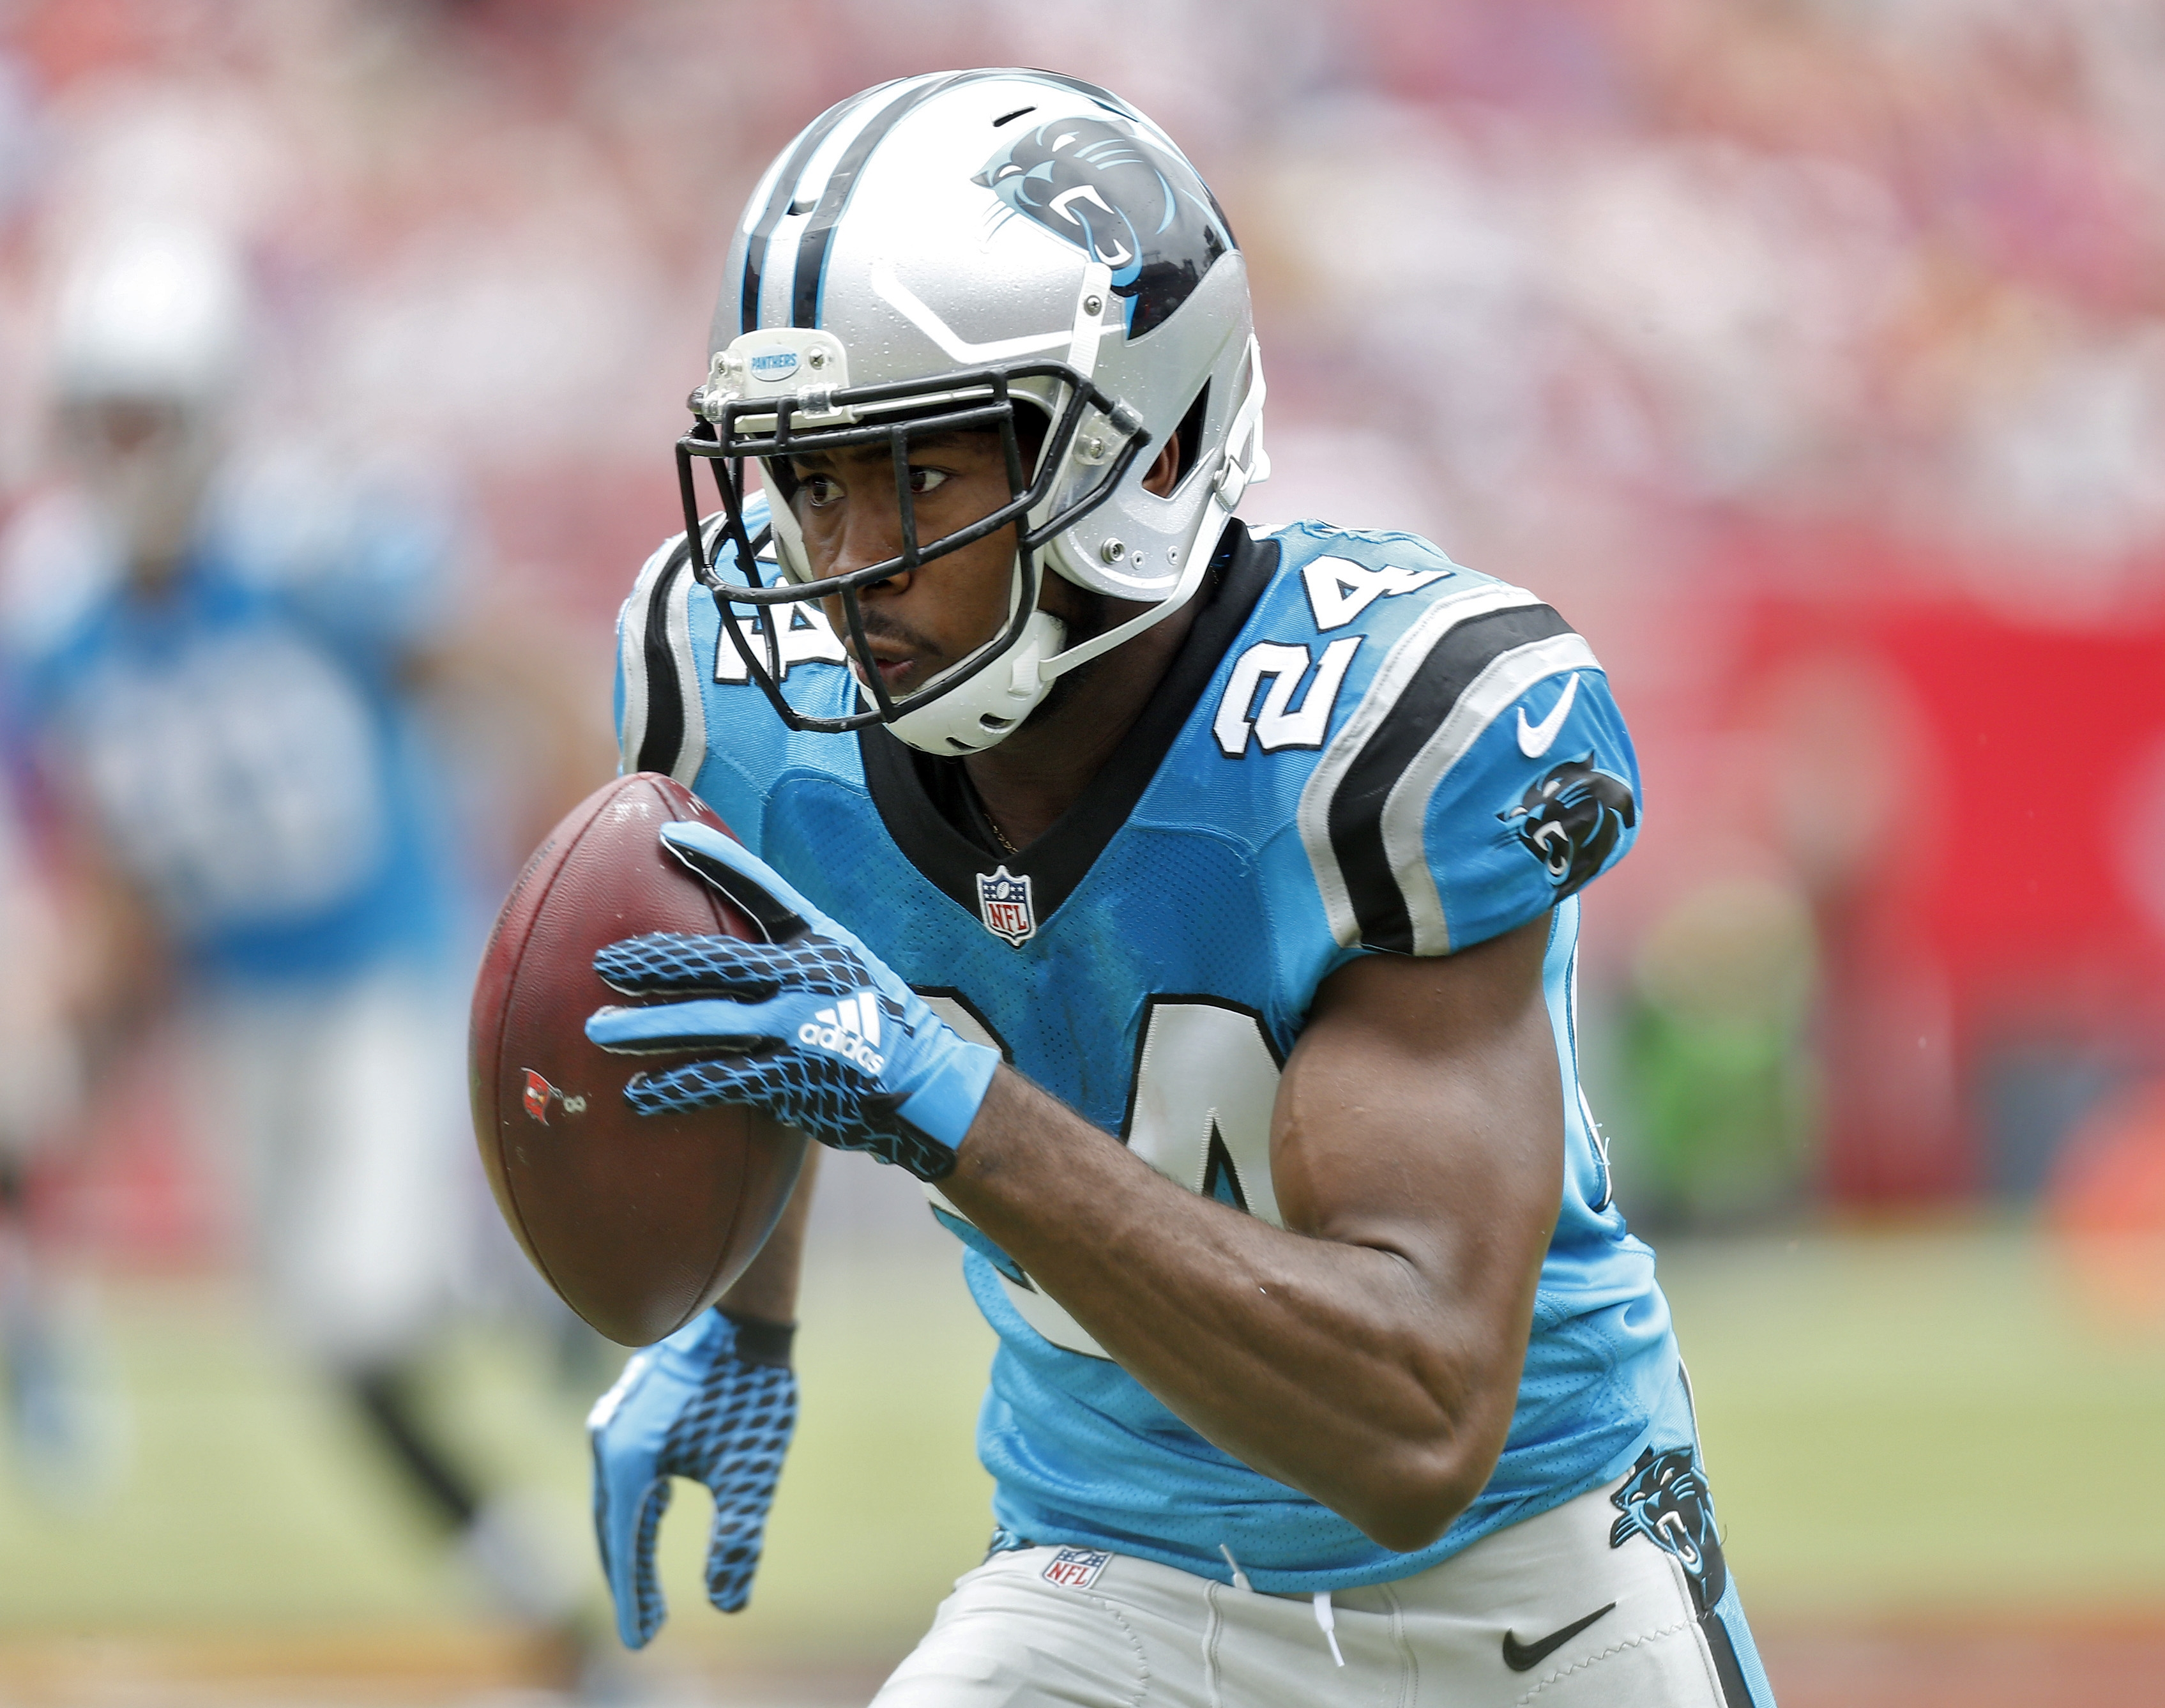 Carolina Panthers cornerback Josh Norman (24) heads for the end zone after intercepting a pass from Tampa Bay Buccaneers quarterback Jameis Winston during the first quarter of an NFL football game Sunday, Oct. 4, 2015, in Tampa, Fla. (AP Photo/Brian Blanc